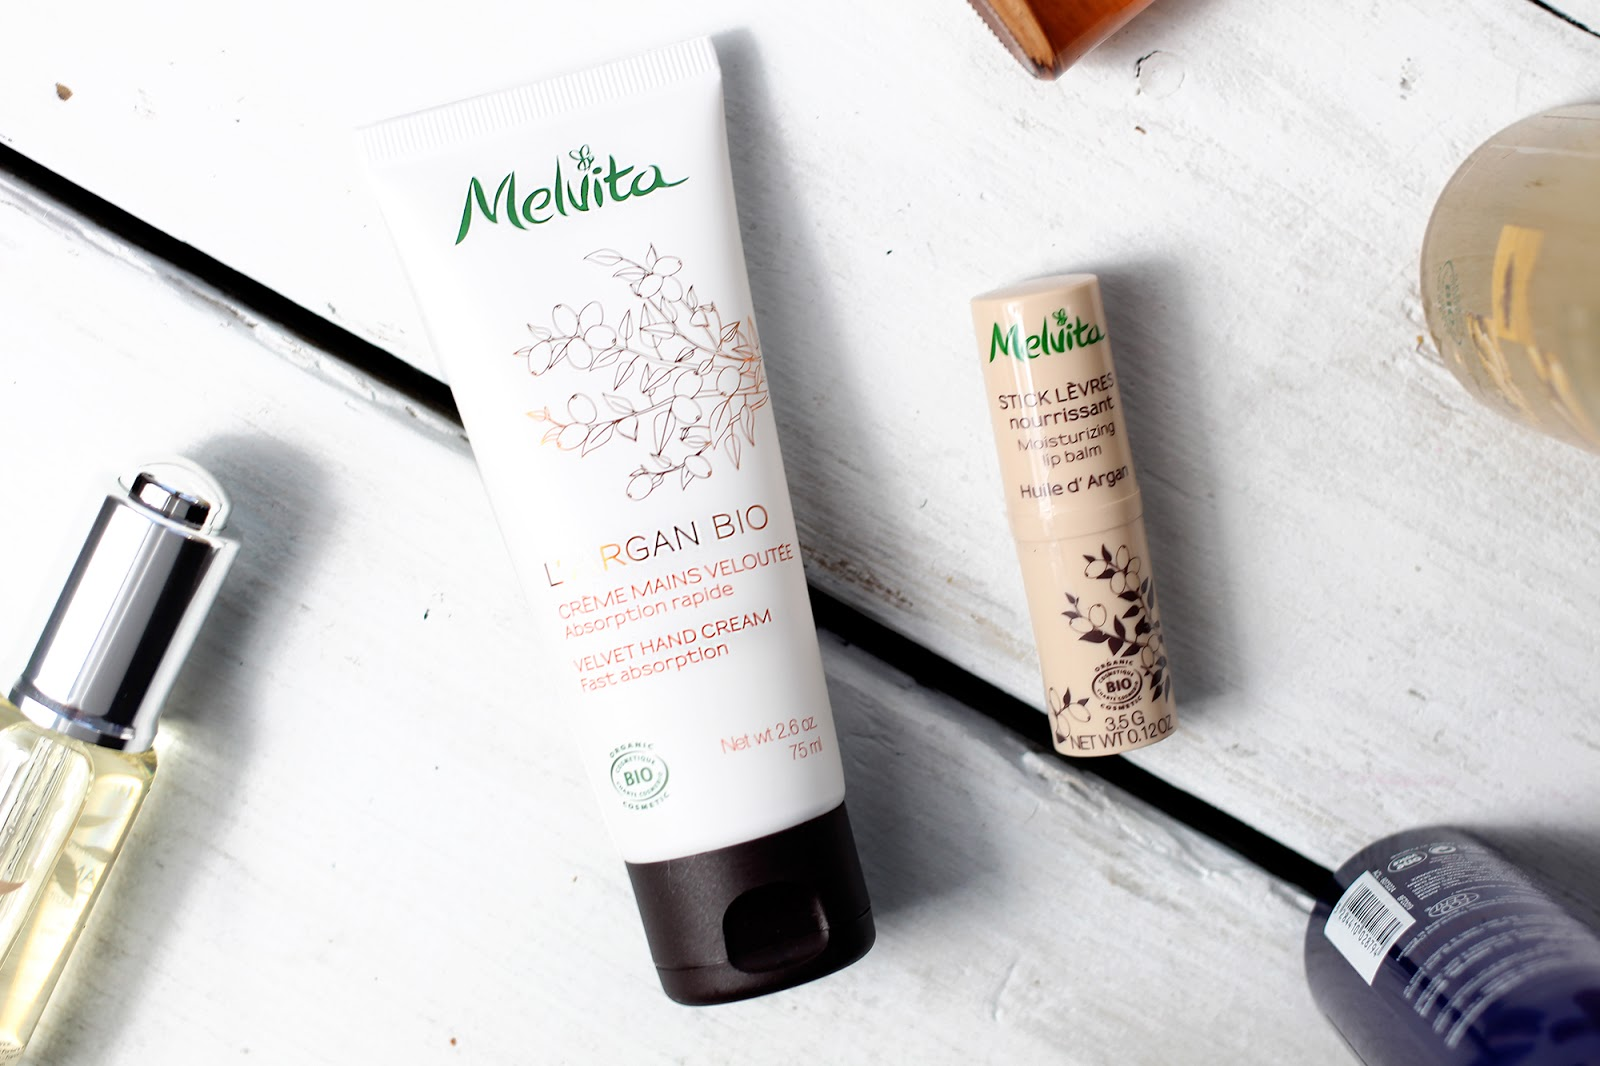 A beauty blogger reviews various products from organic skincare brand Melvita